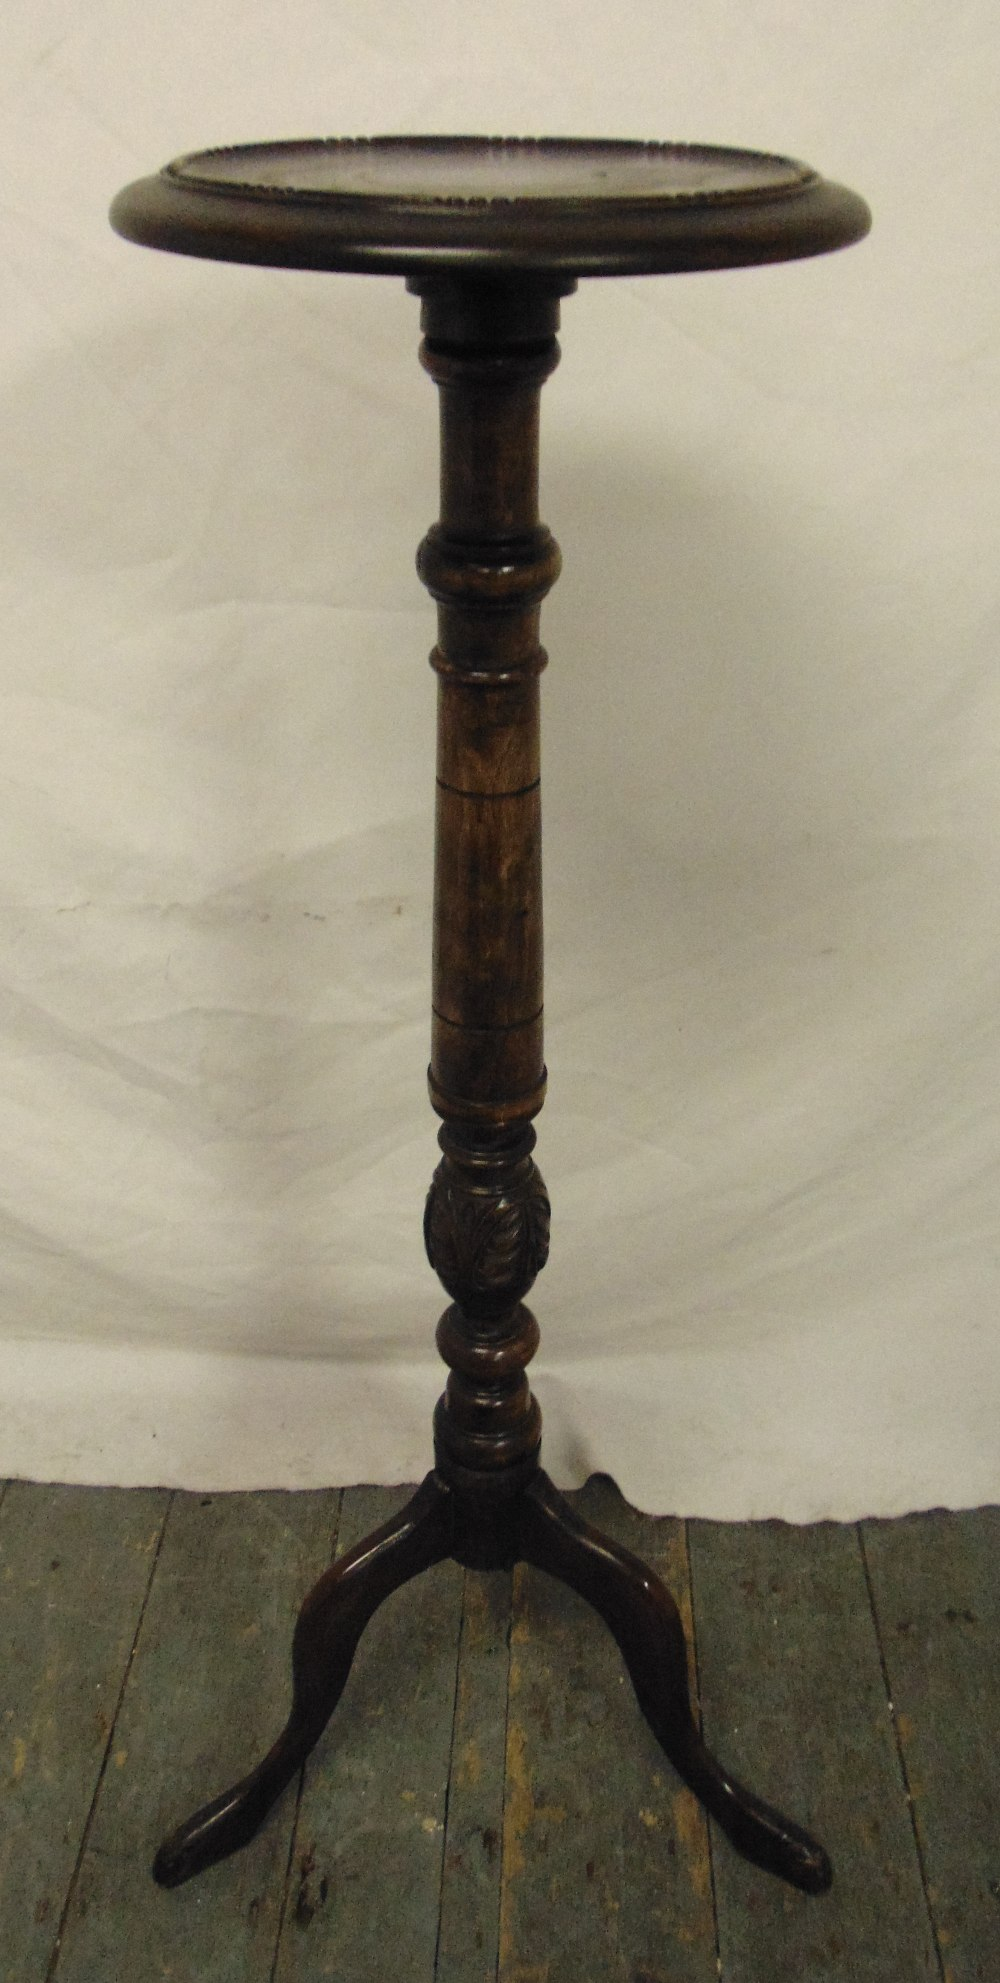 Lot 26 - A mahogany plant stand of knopped cylindrical form on three outswept legs